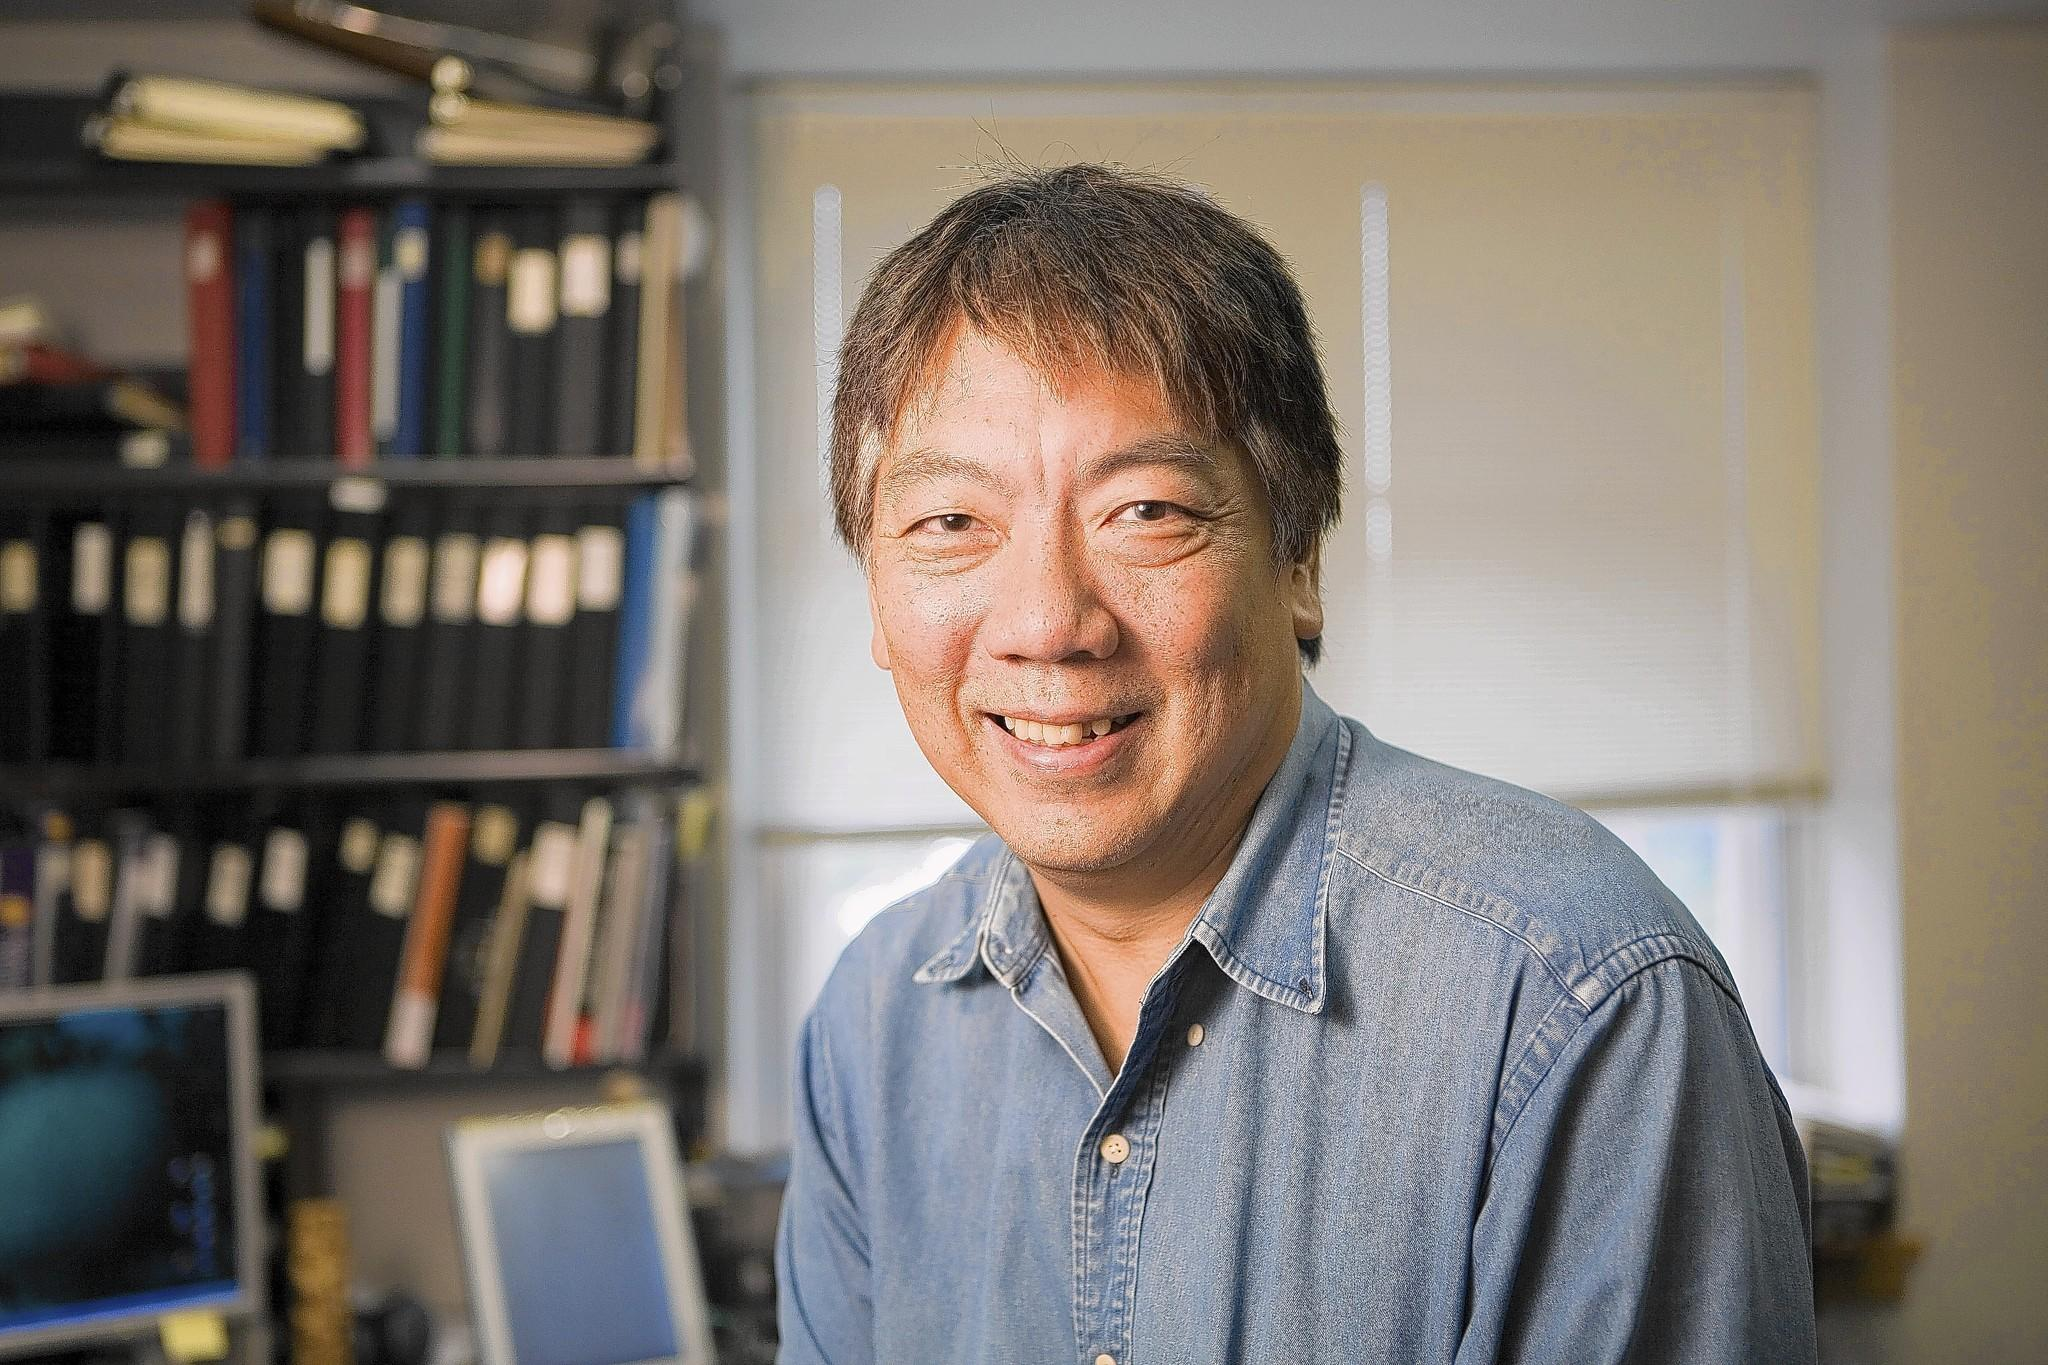 Johns Hopkins scientist Steven Hsiao died June 16. He was 59.